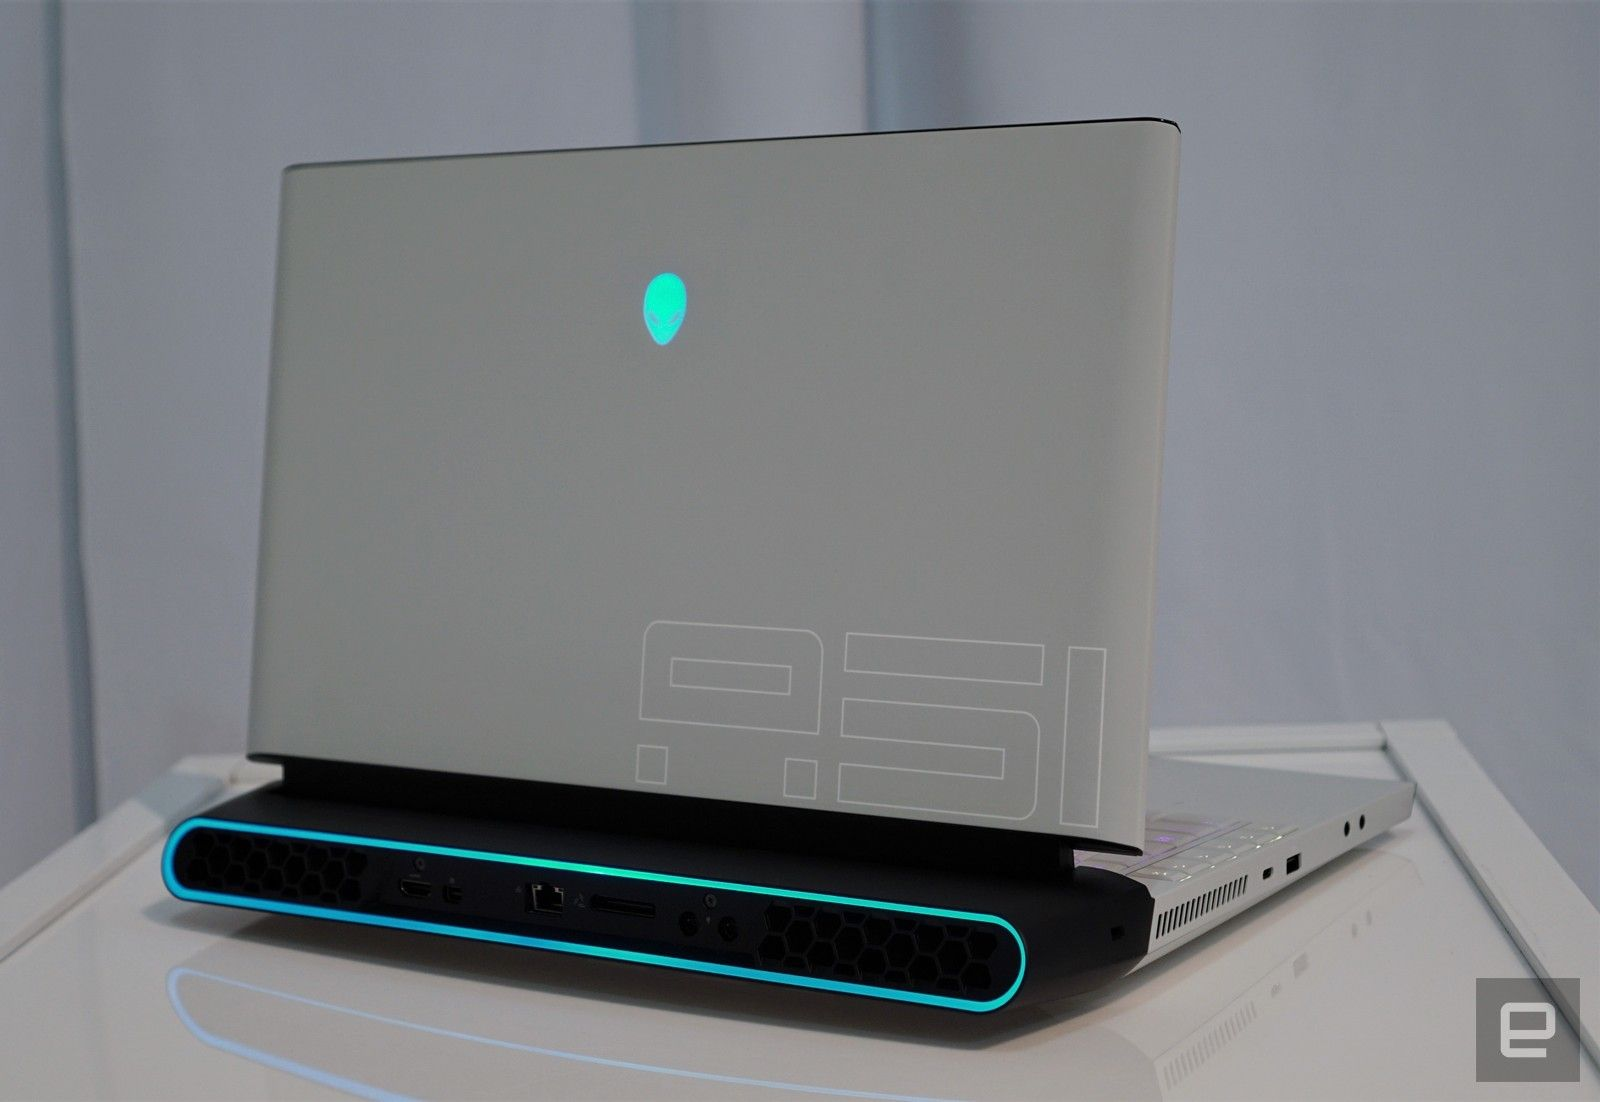 Alienware S Area 51m Laptop Has An Upgradable Cpu And Graphics